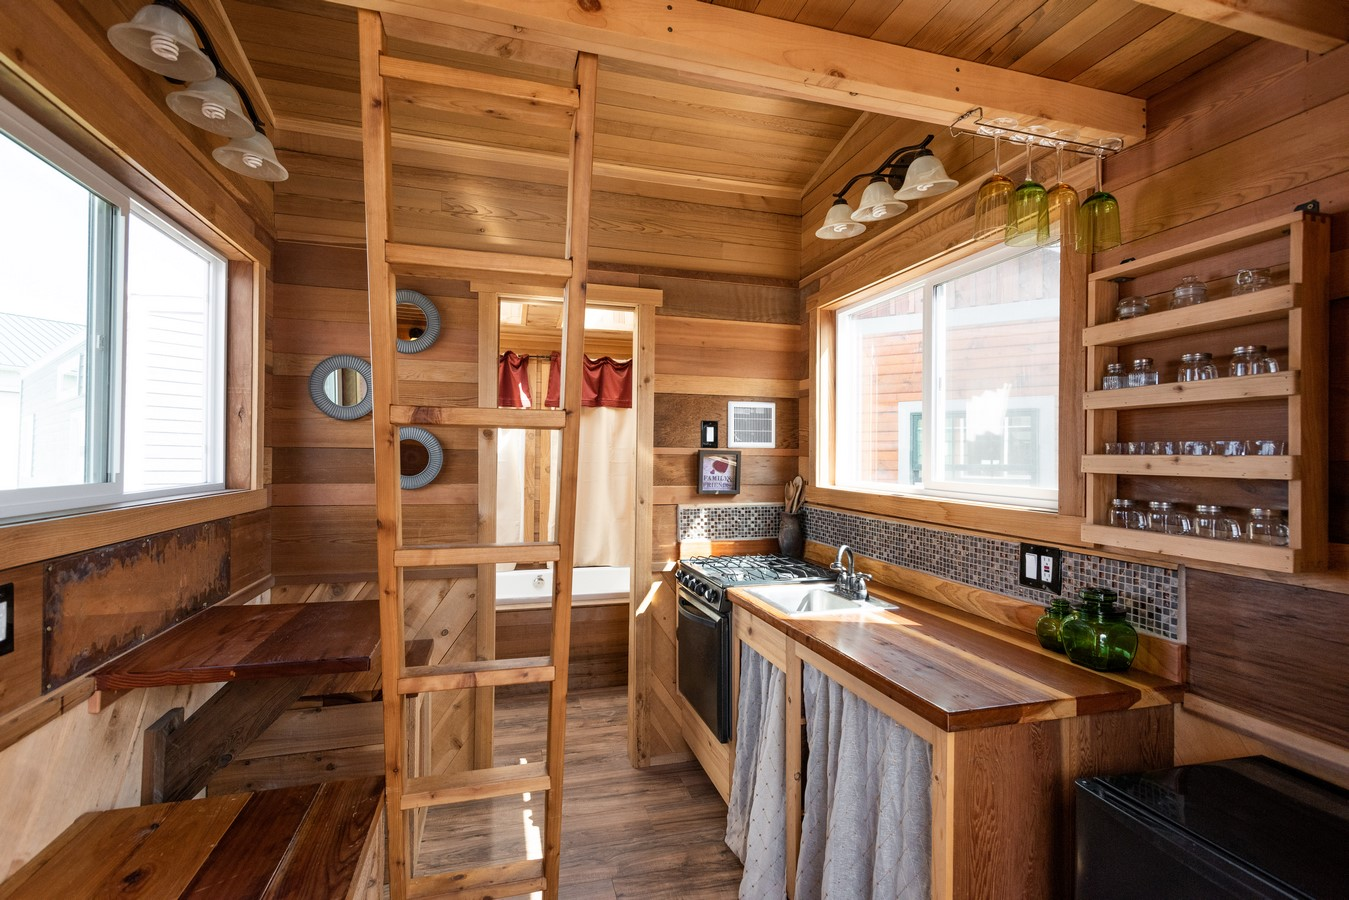 15 Examples of Tiny-home designs - Sheet5